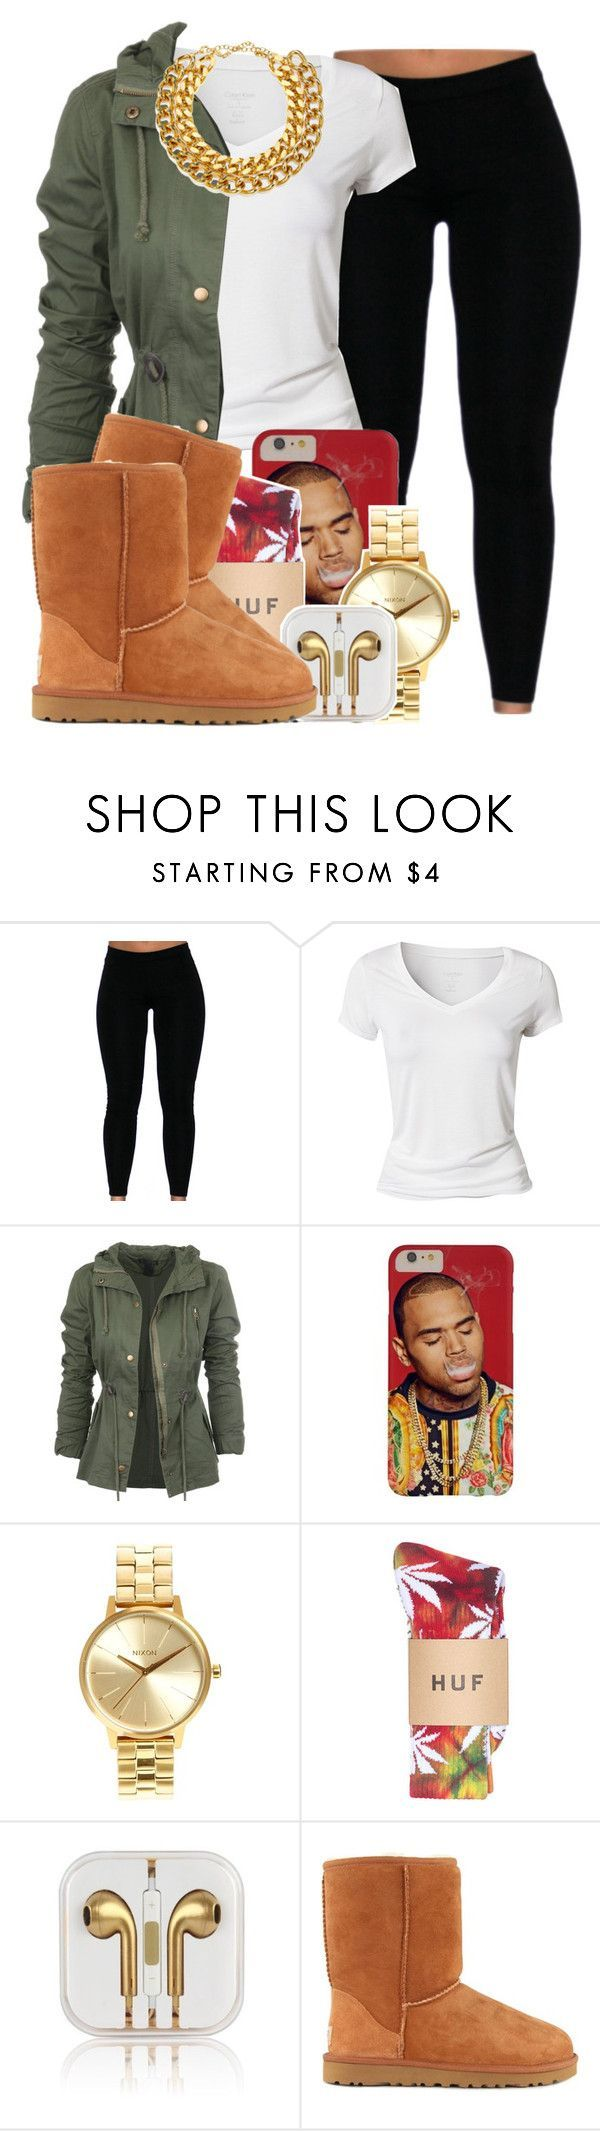 """769"" by tuhlayjuh ❤ liked on Polyvore featuring Calvin Klein, Nixon, UGG Australia and A.V. Max"